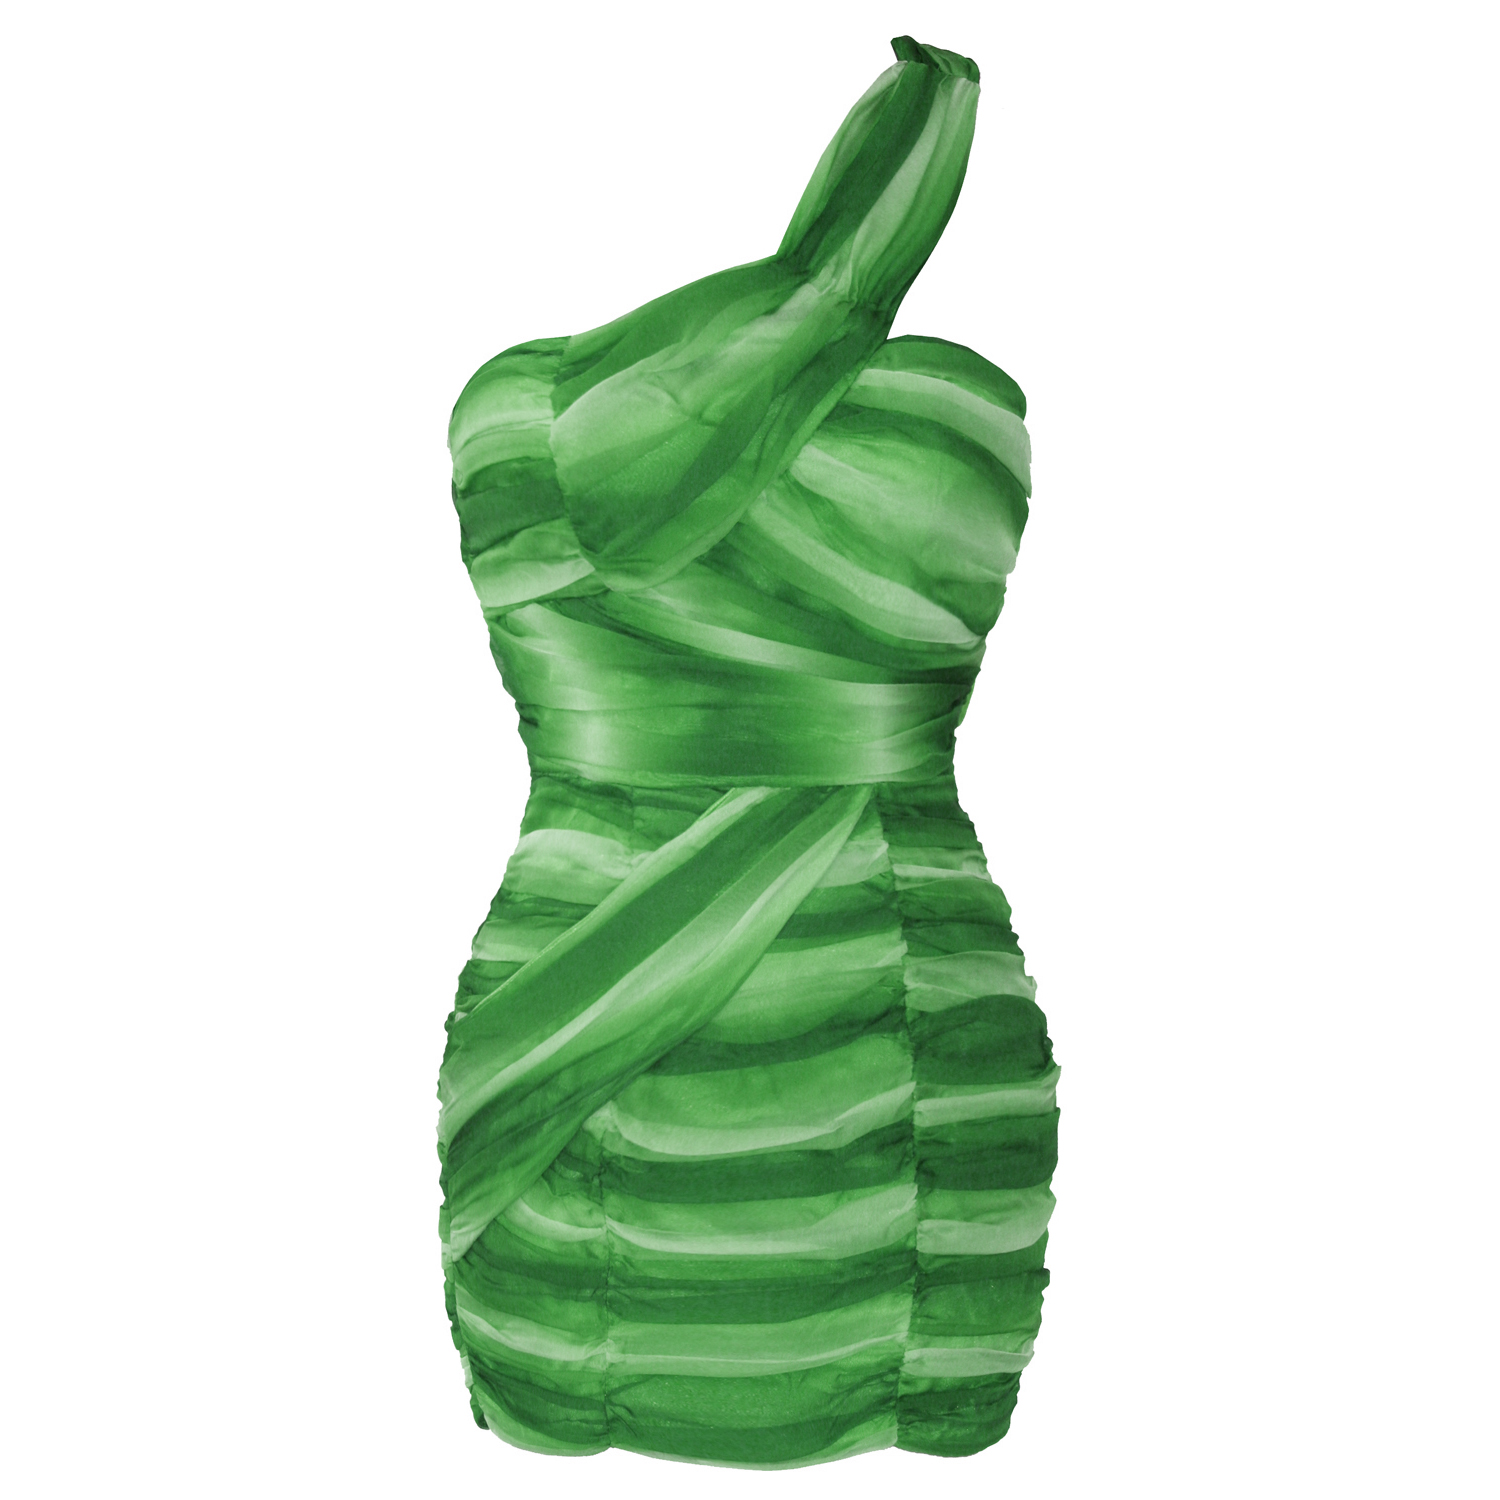 Ladies-New-Green-Chiffon-One-Shoulder-Mini-Party-Cocktail-Evening-Dress